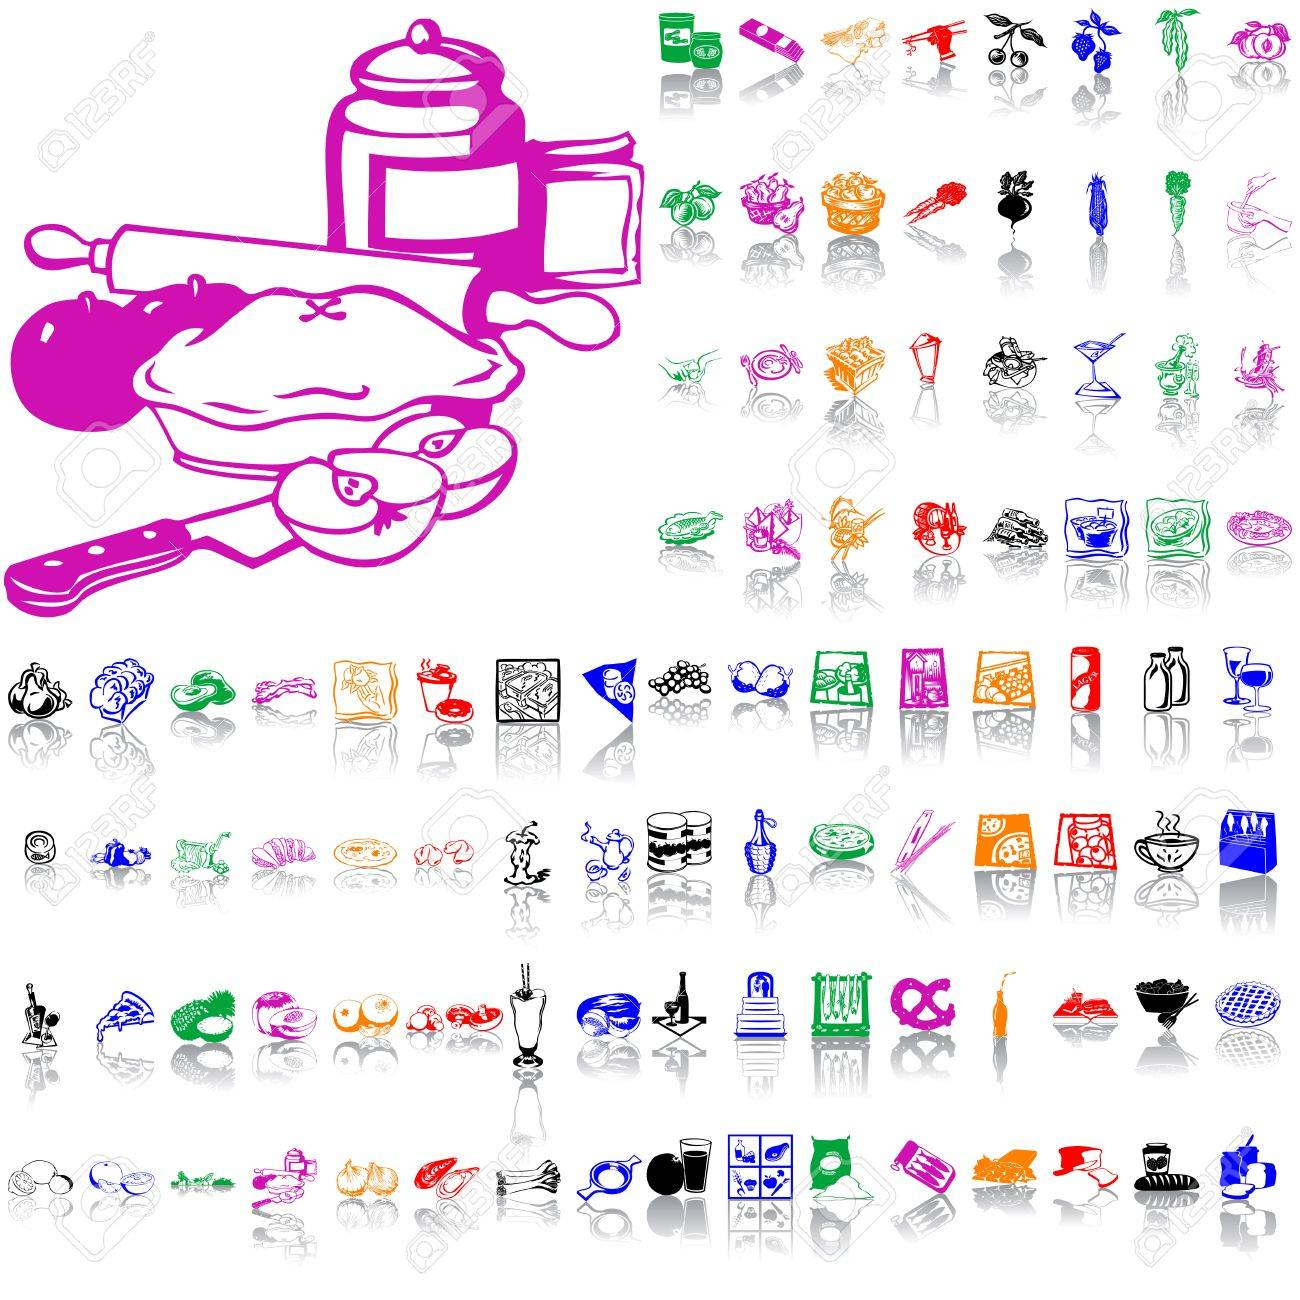 Food clipart. Part 7. Isolated groups and layers. Global colors. Stock Vector - 5090151